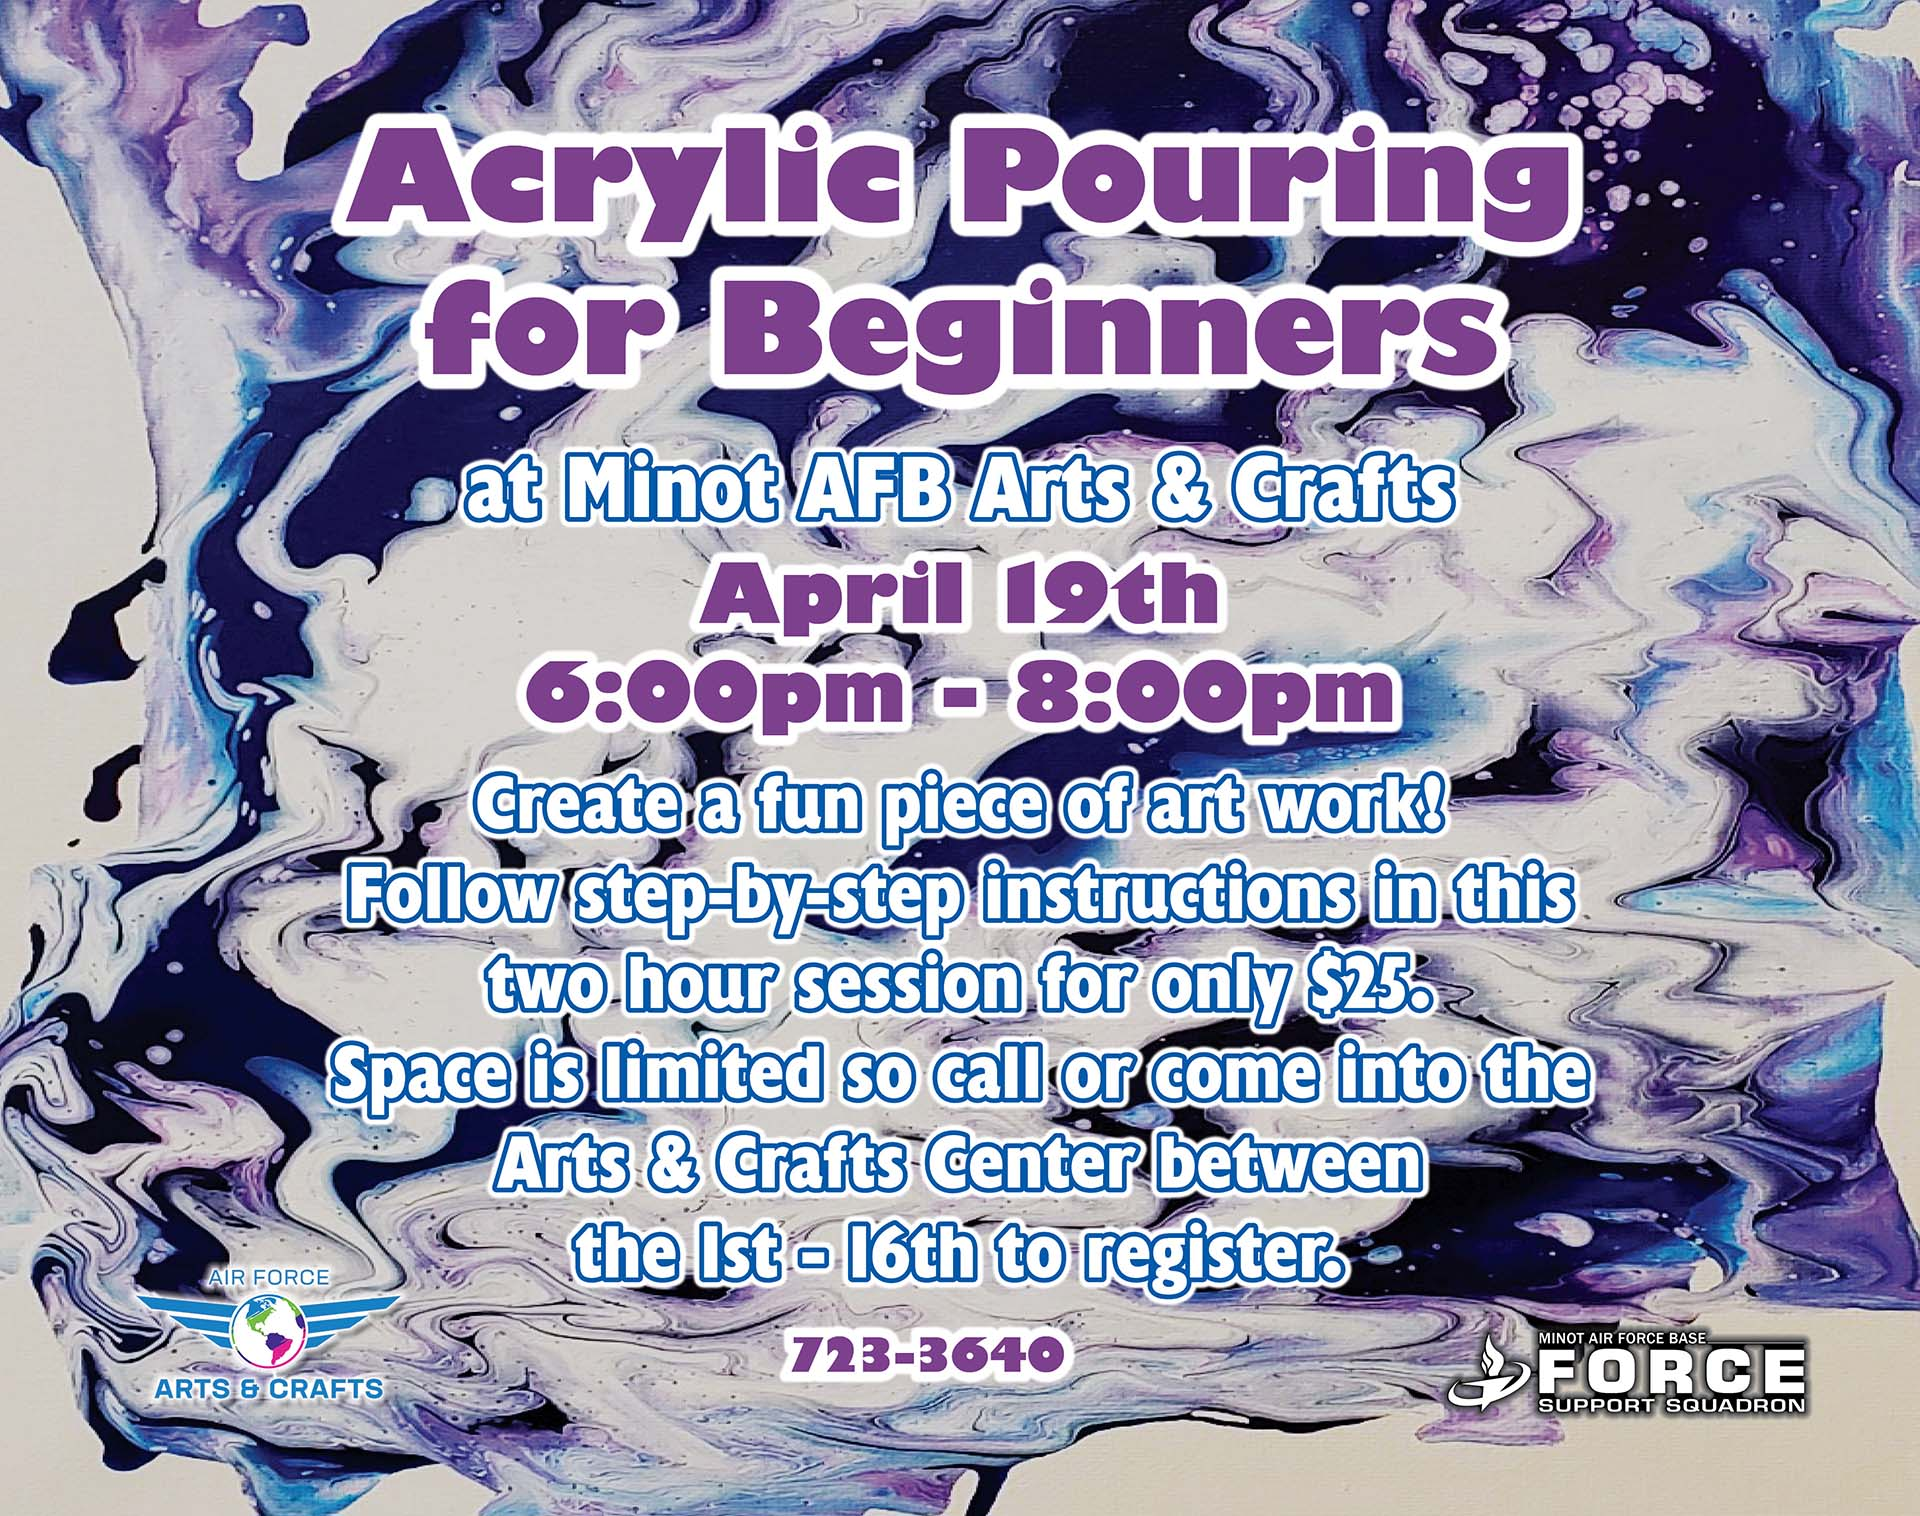 Acrylic Pouring for Beginners